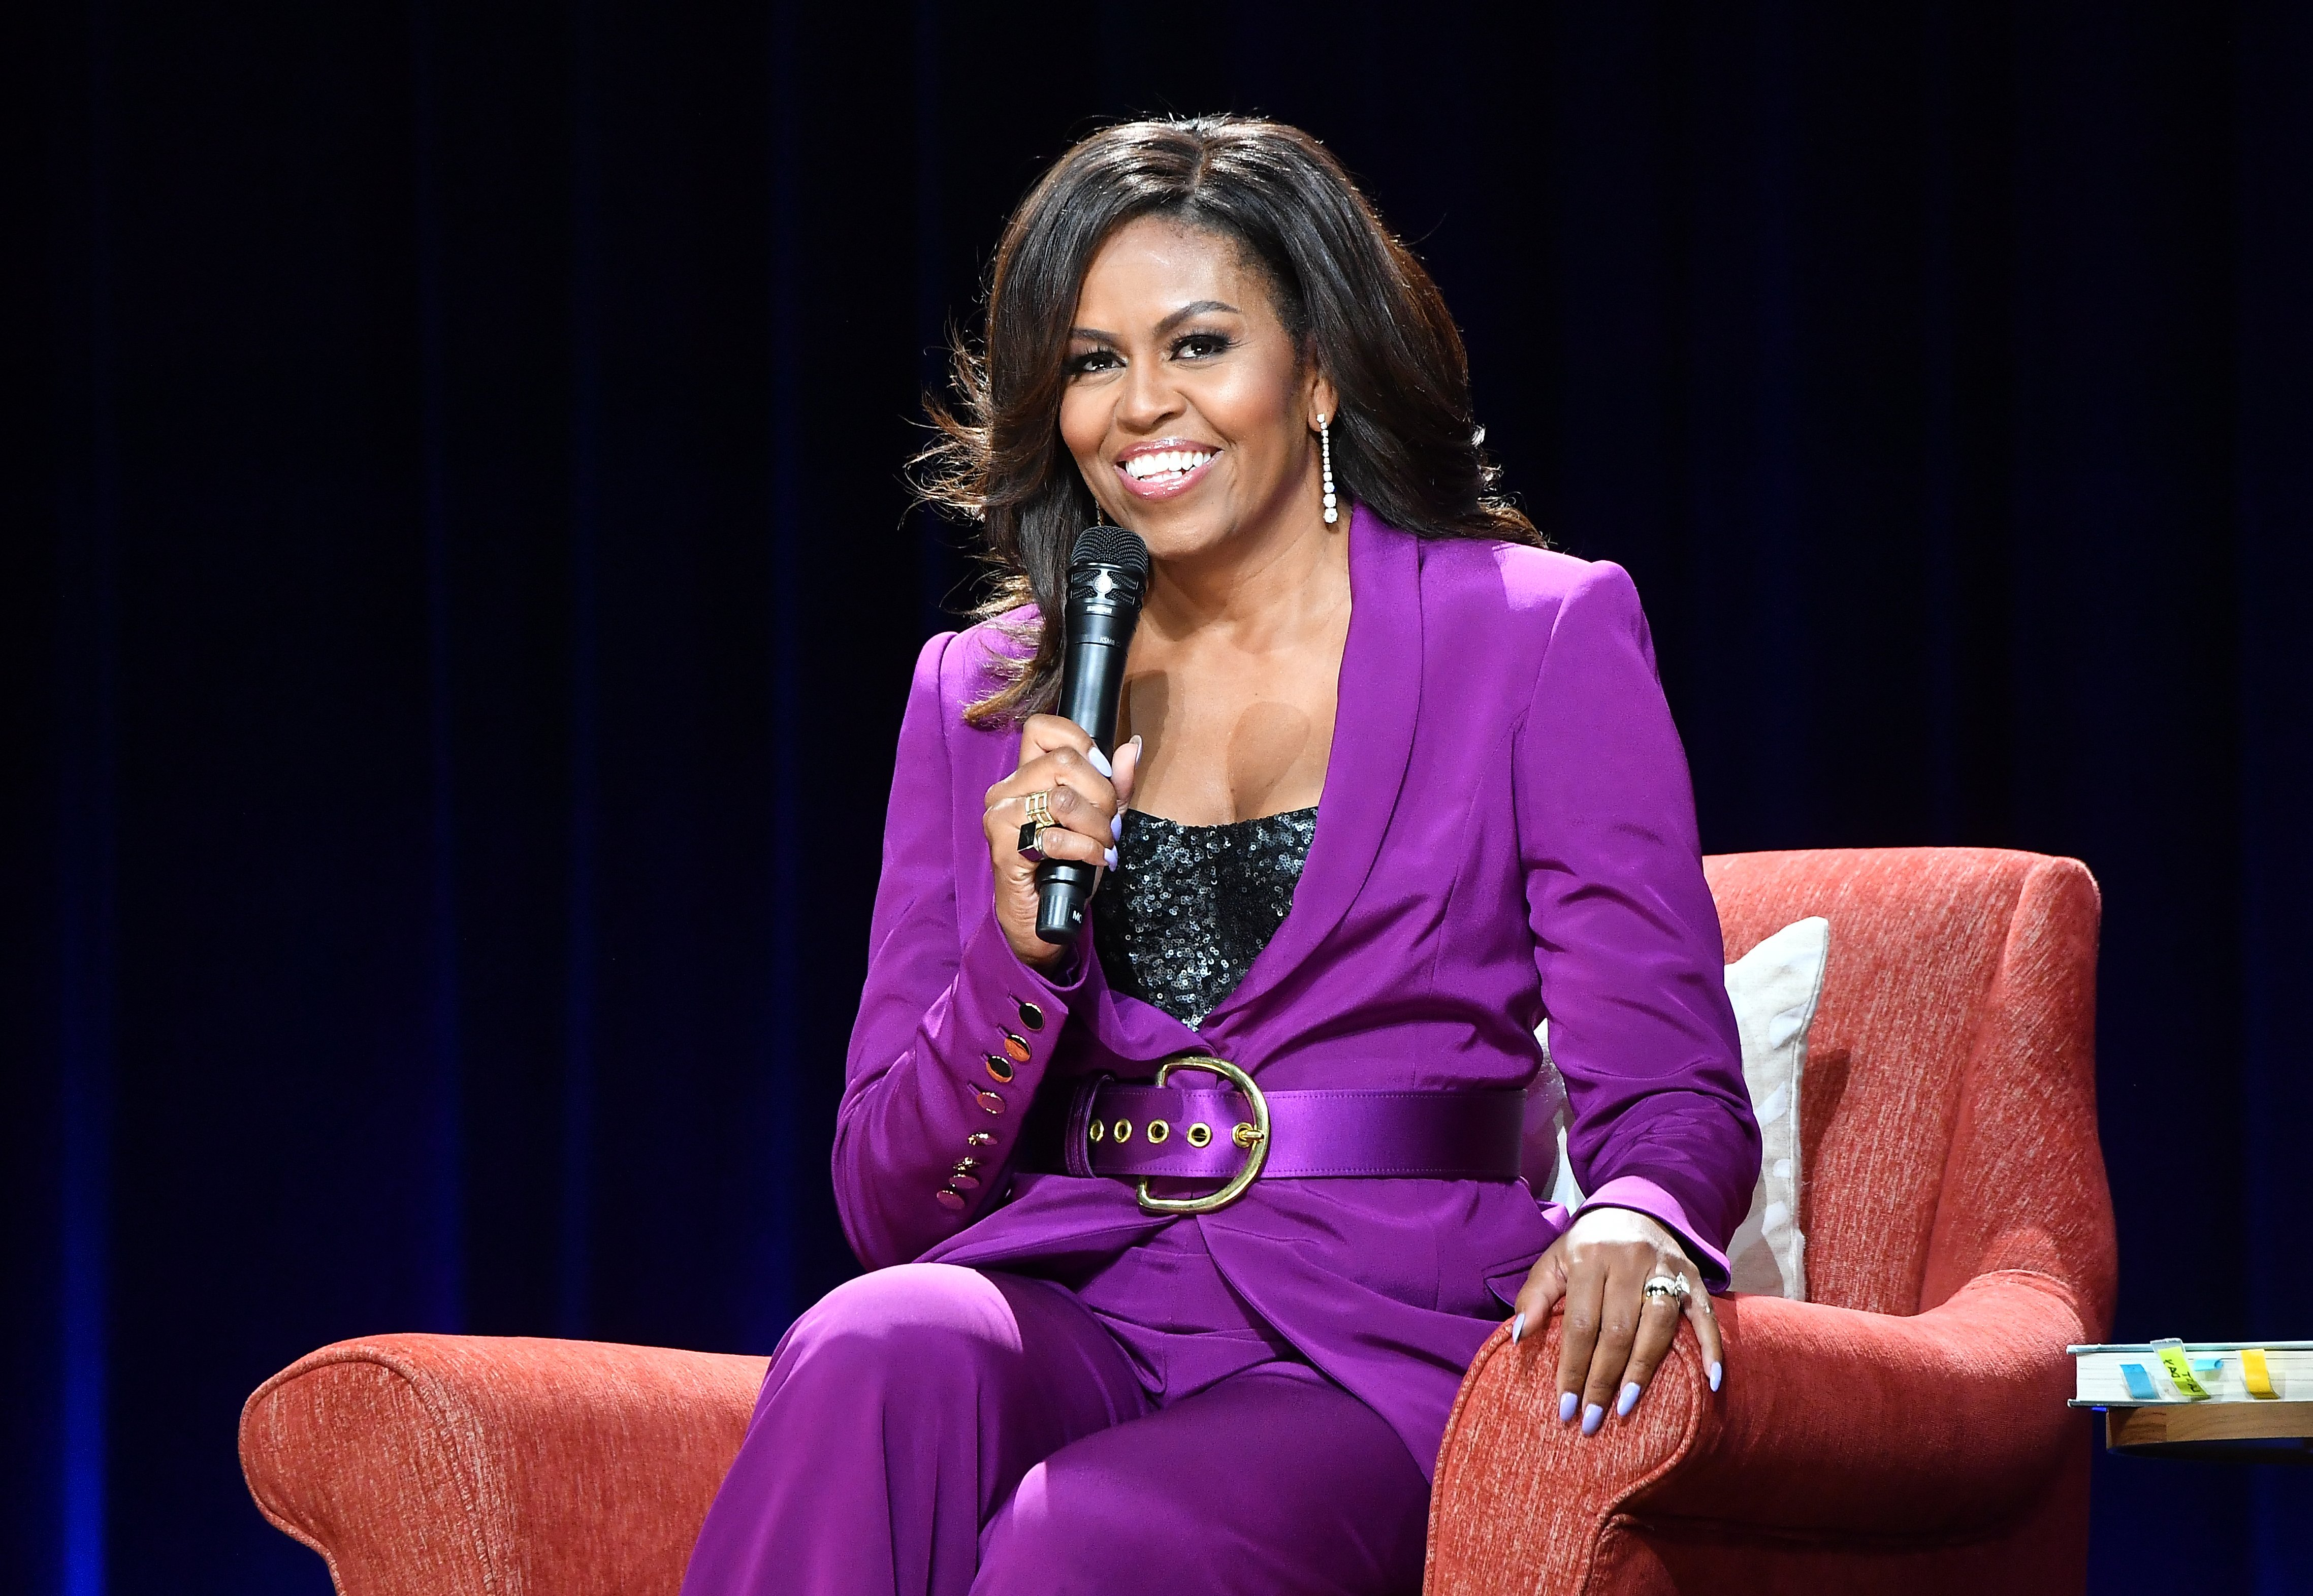 Michelle Obama promoting her book, 'Becoming' at the State Farm Arena in Atlanta in May 2019. | Photo: Getty Images